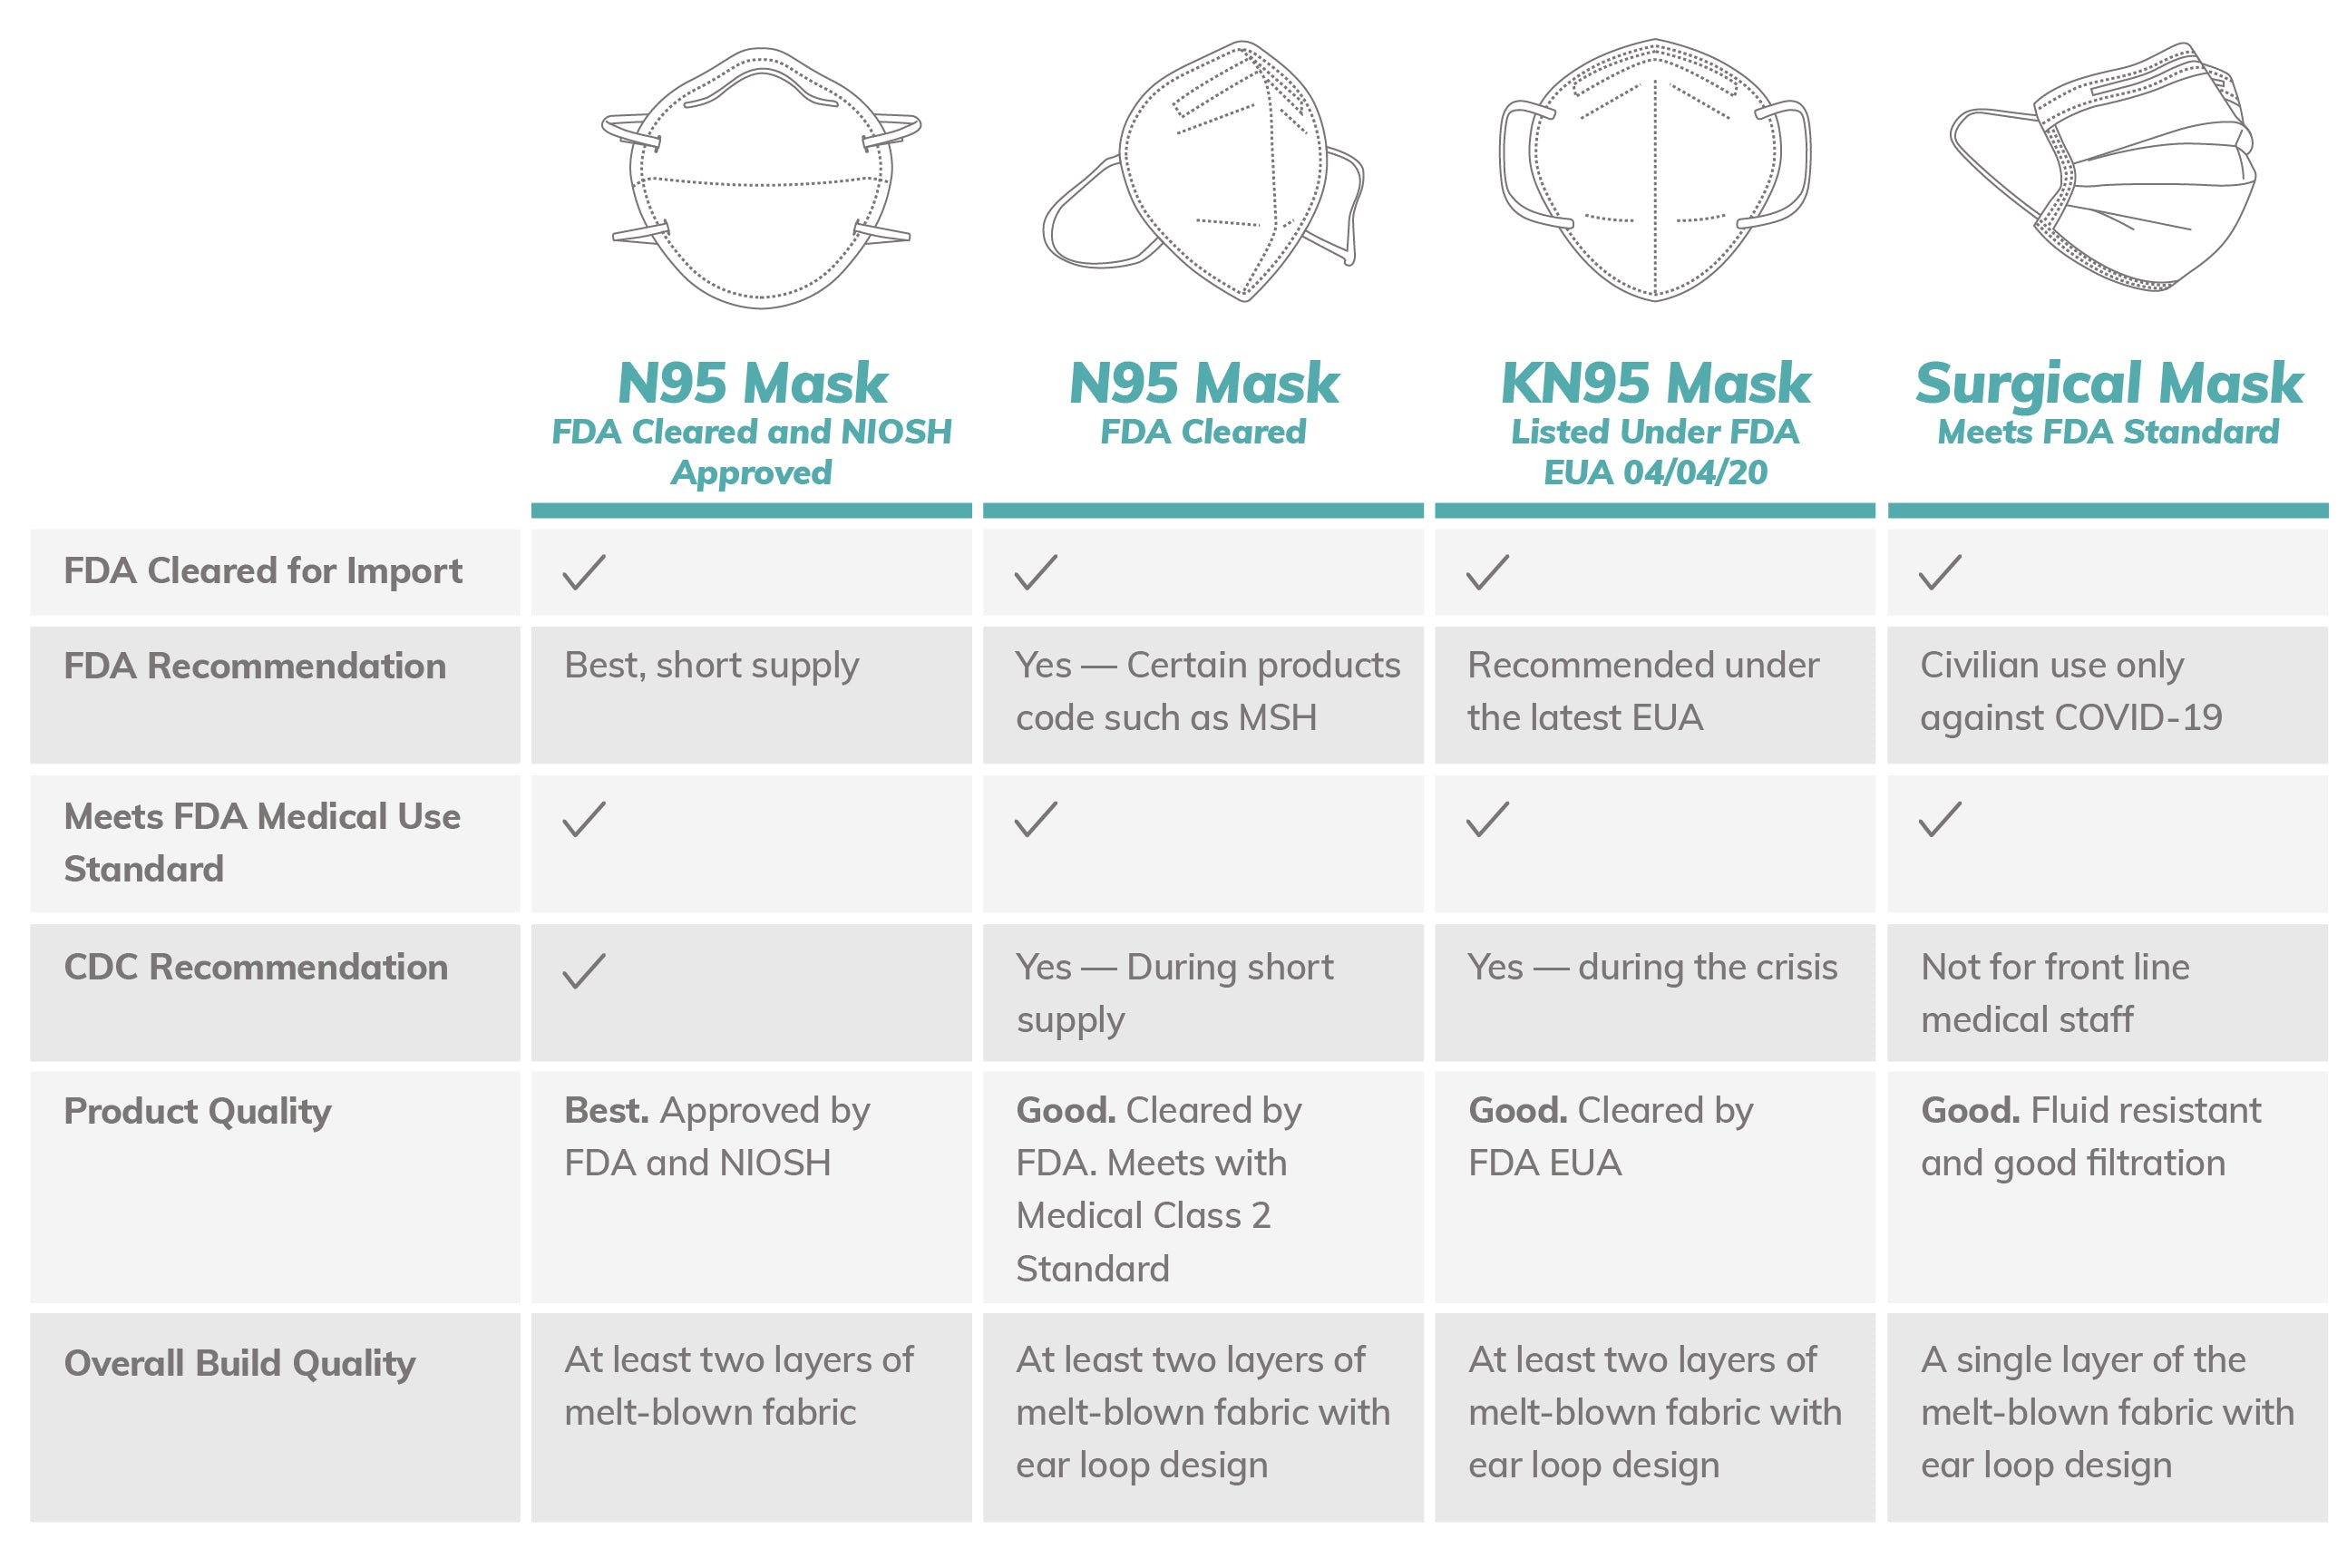 Find Difference in N95 Mask, KN95 mask and Surgical Mask